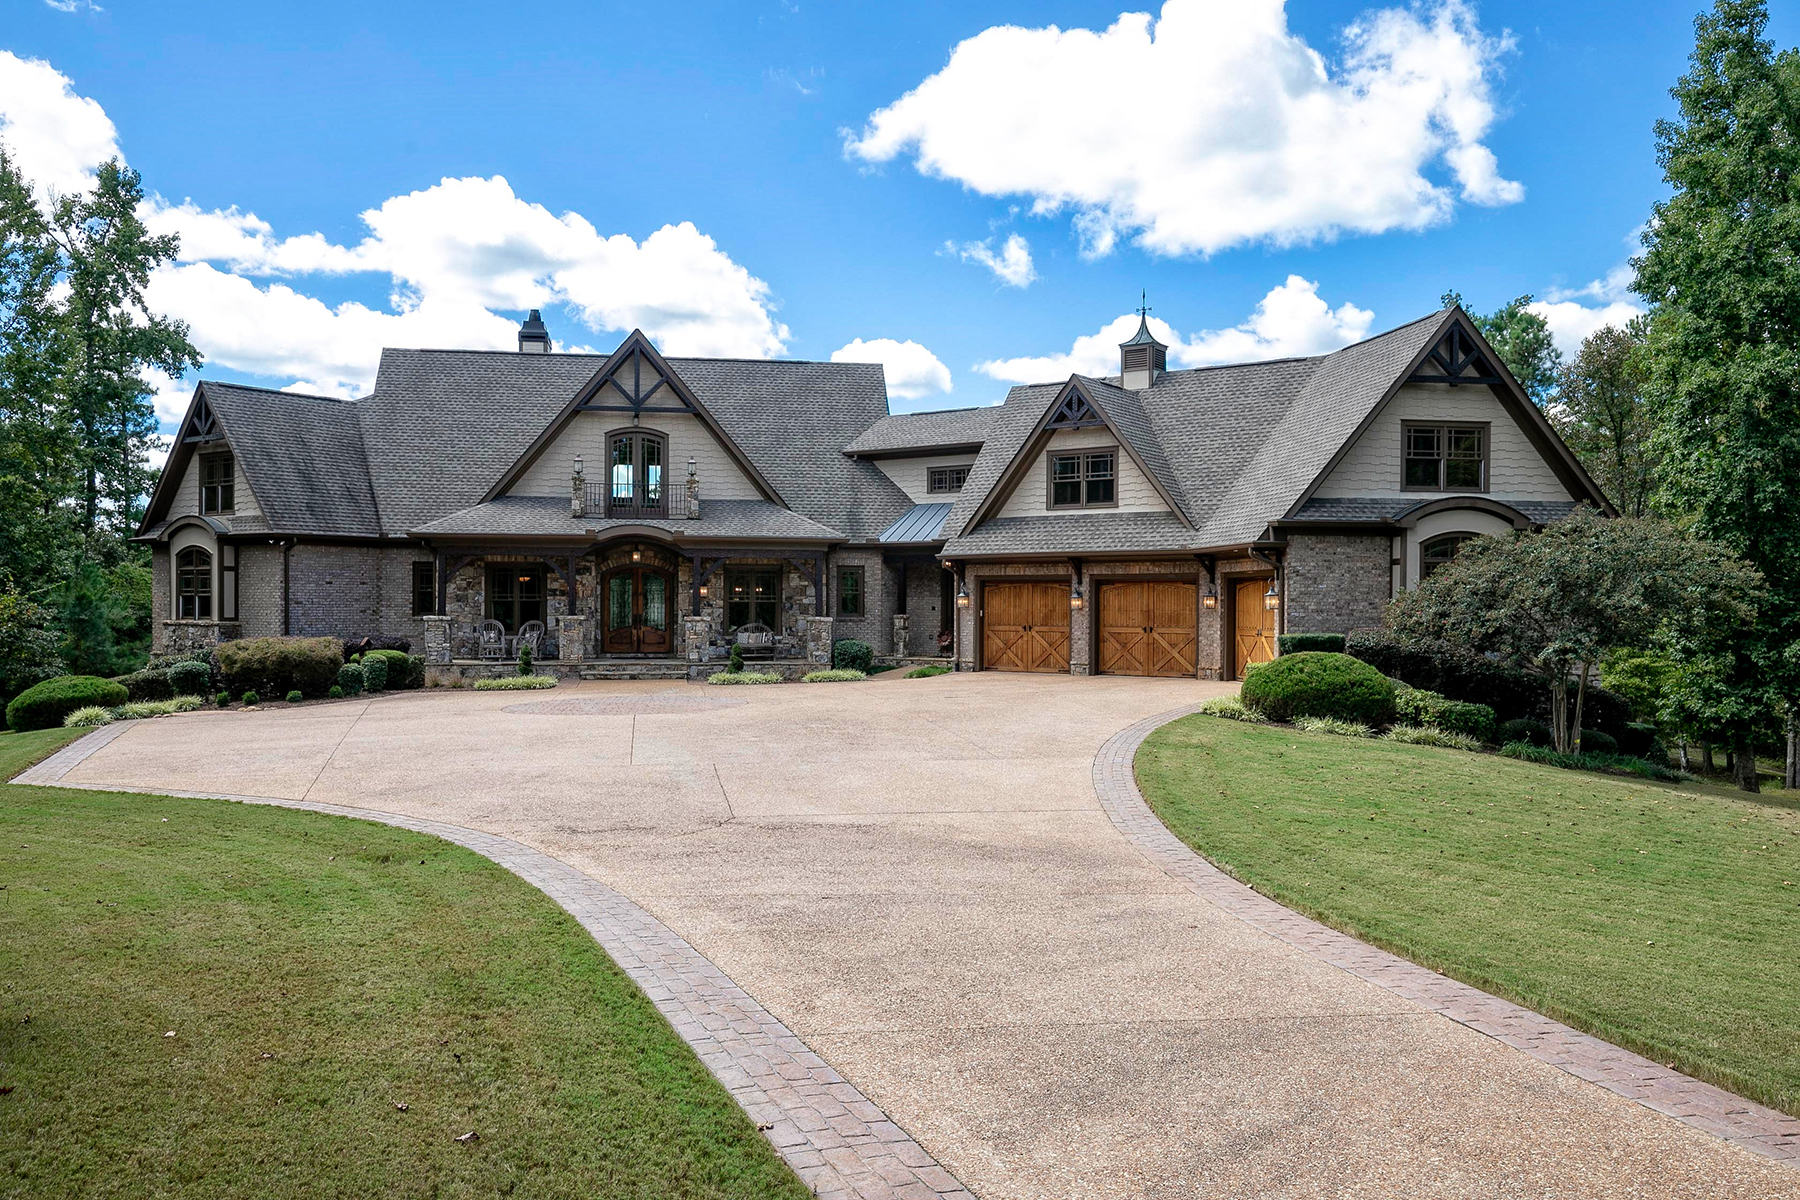 Single Family Homes for Active at Entertainers Dream - Not Far From The City Lights 6125 Tyree Road Winston, Georgia 30187 United States